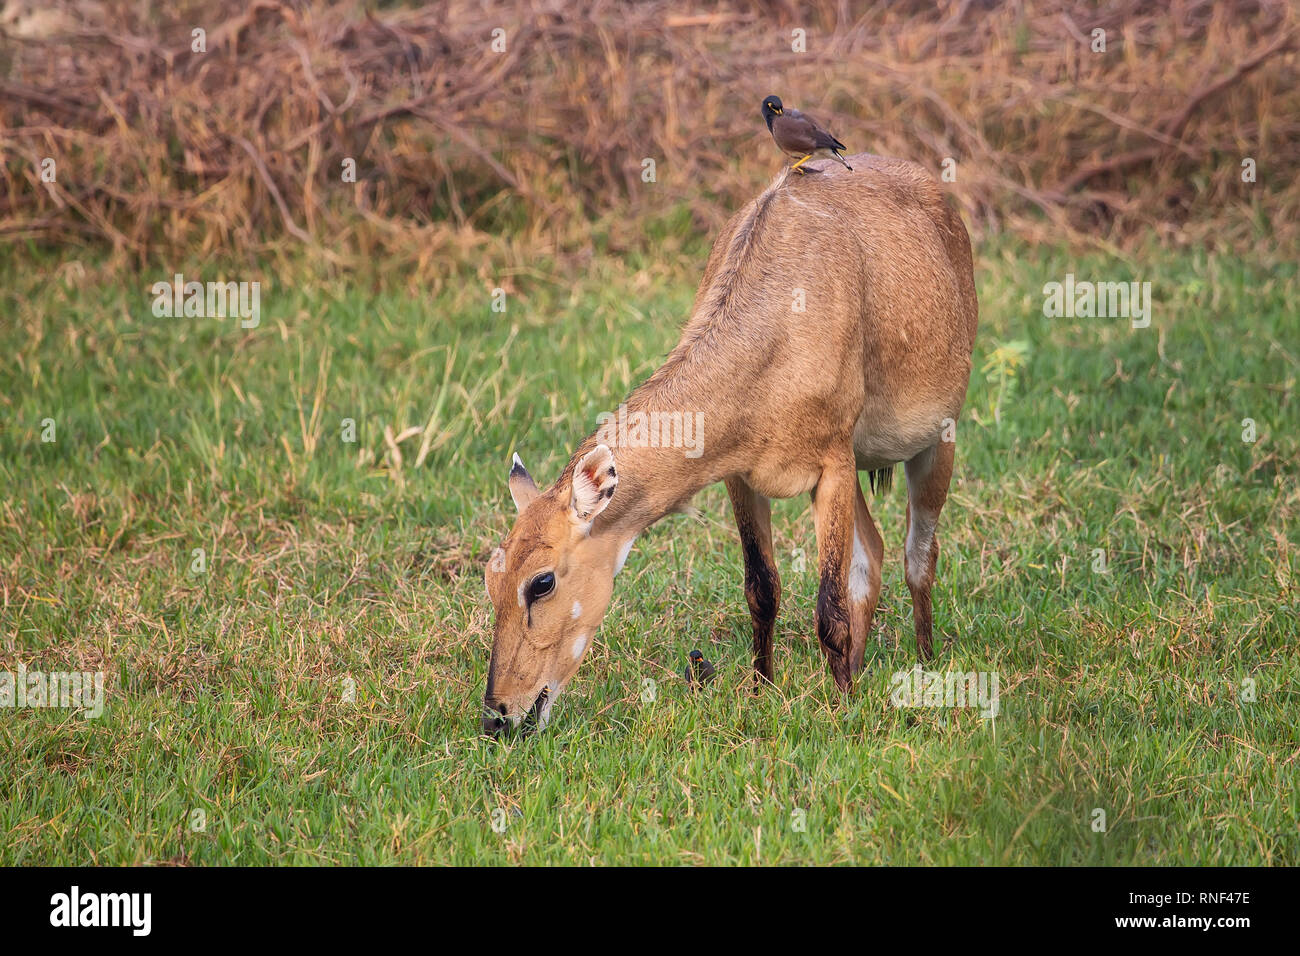 Female Nilgai with Brahminy myna sitting on her in Keoladeo National Park, Bharatpur, India. Nilgai is the largest Asian antelope and is endemic to th Stock Photo